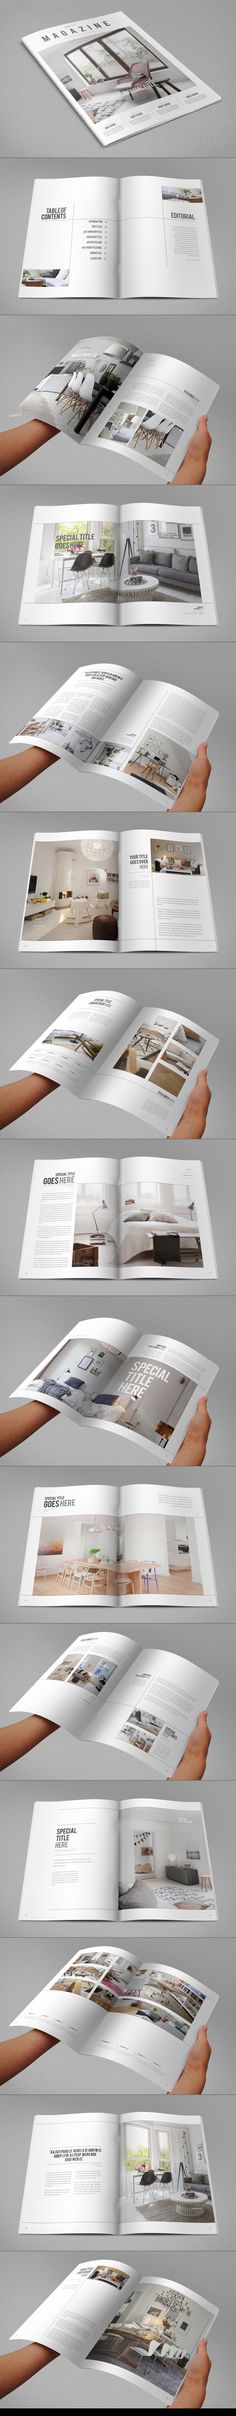 Minimal Interior Design Magazine on Behance